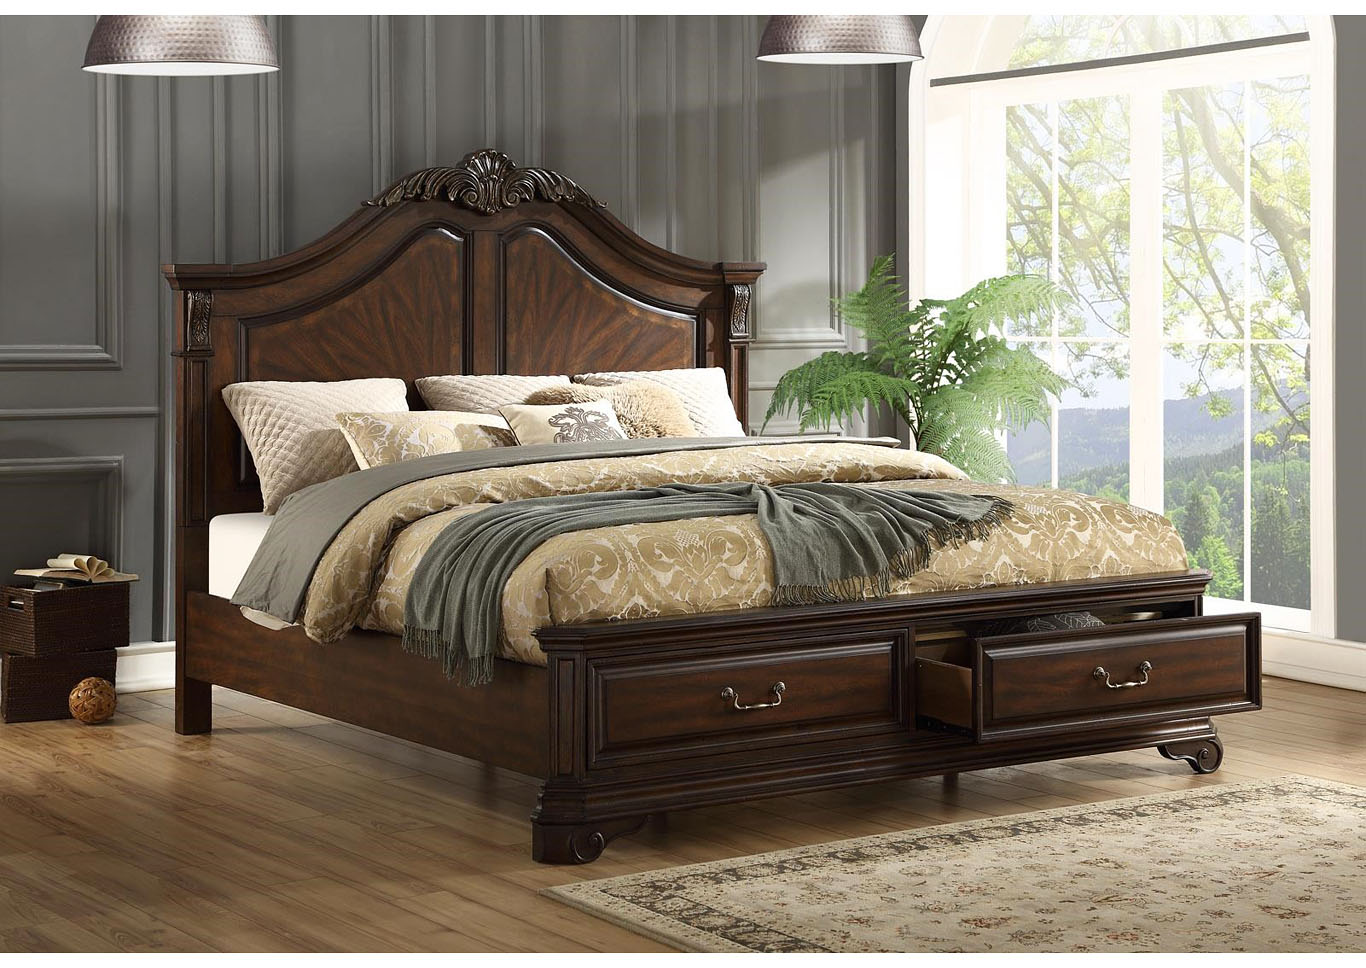 Andrea 4pc Traditional Storage Bedroom Group - Queen,Instore